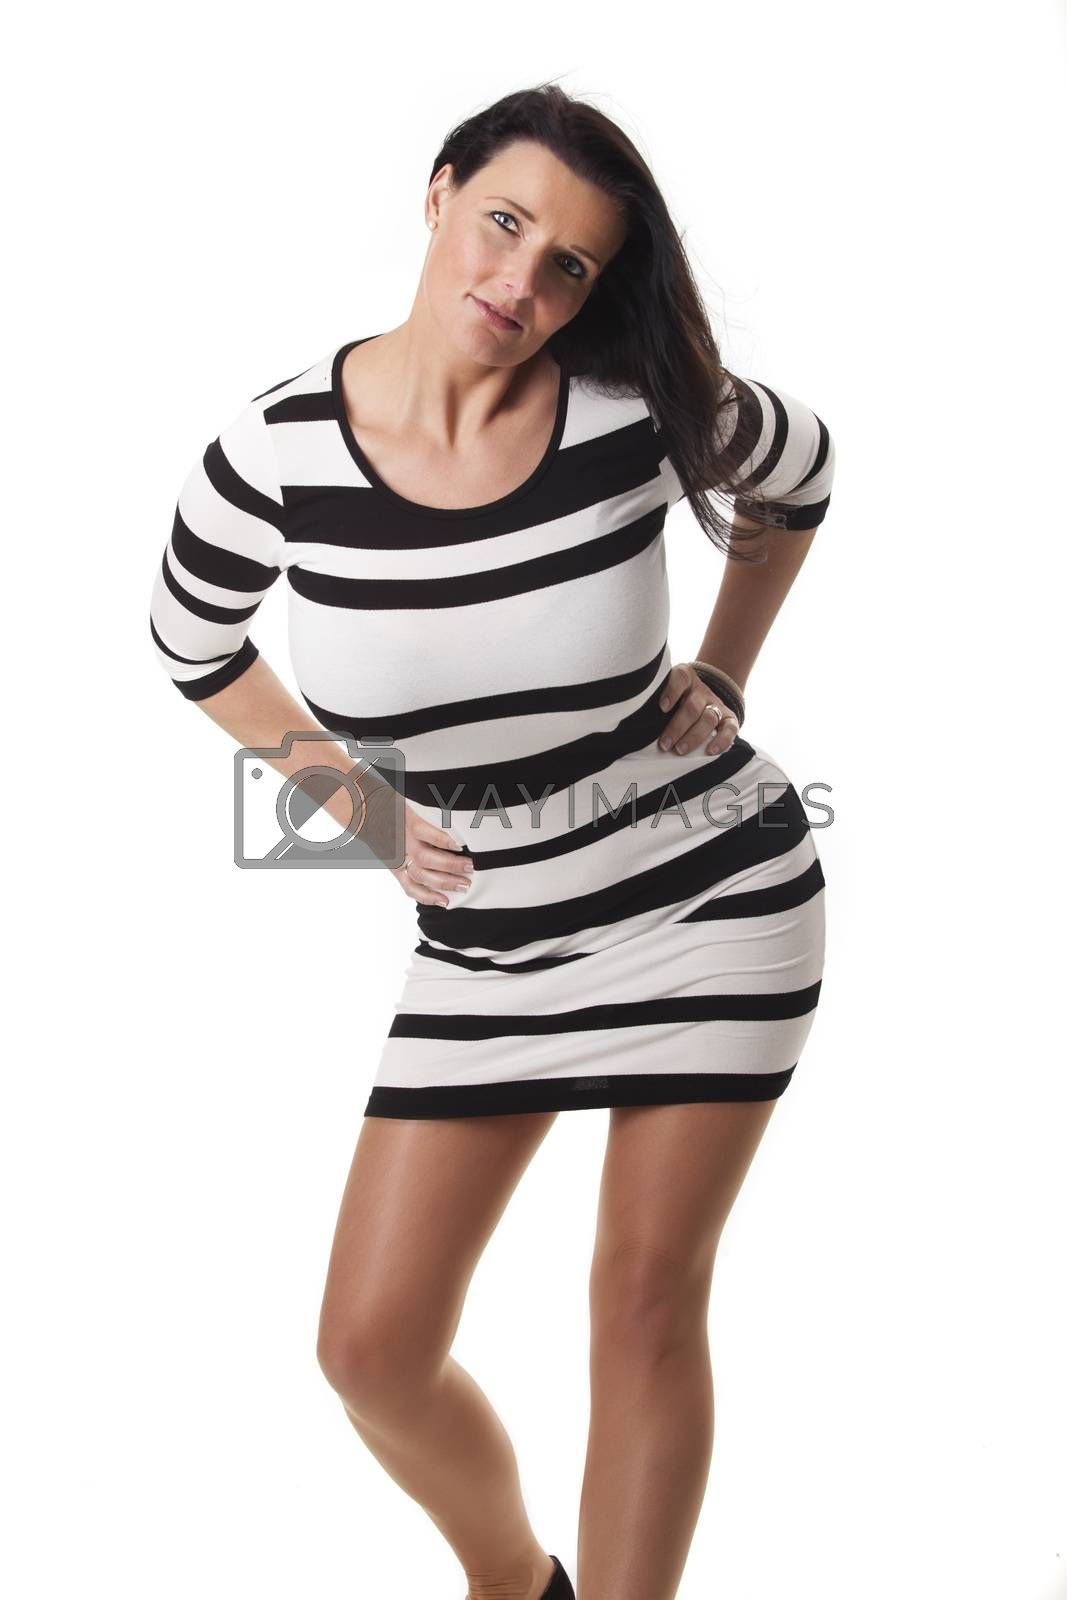 attractive woman in a striped dress